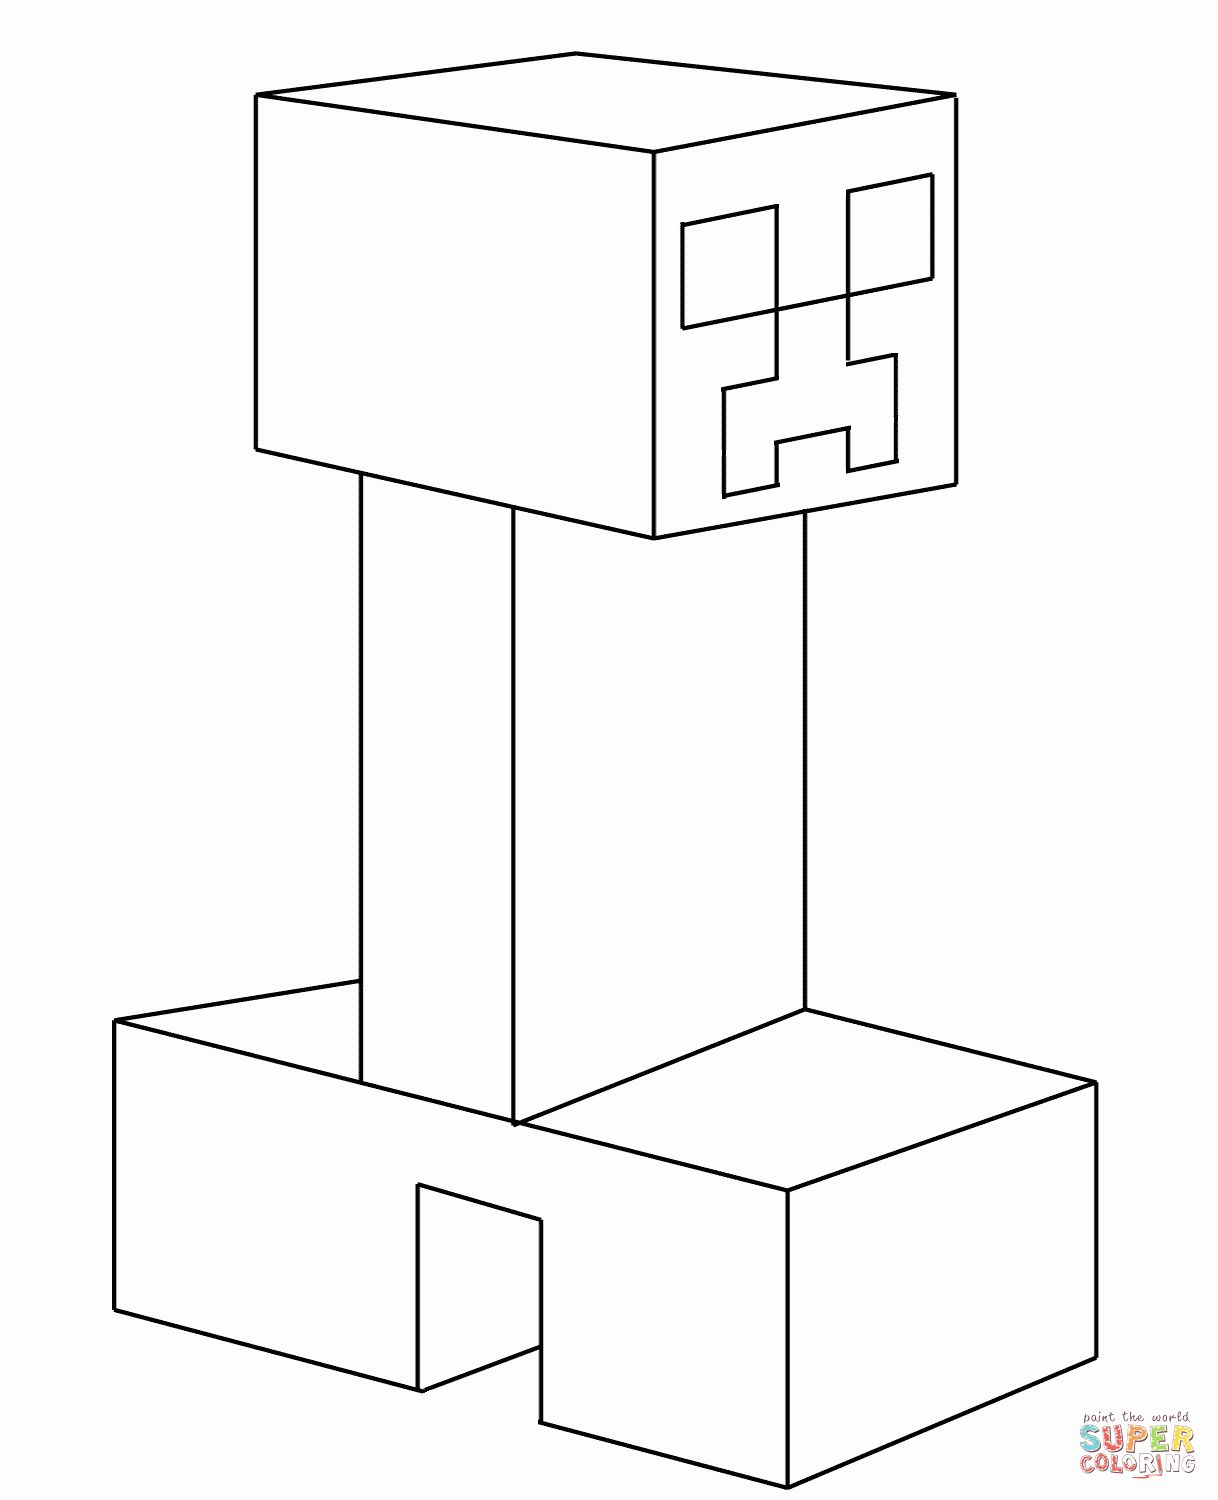 24 Minecraft Creeper Coloring Page in 2020 Coloring